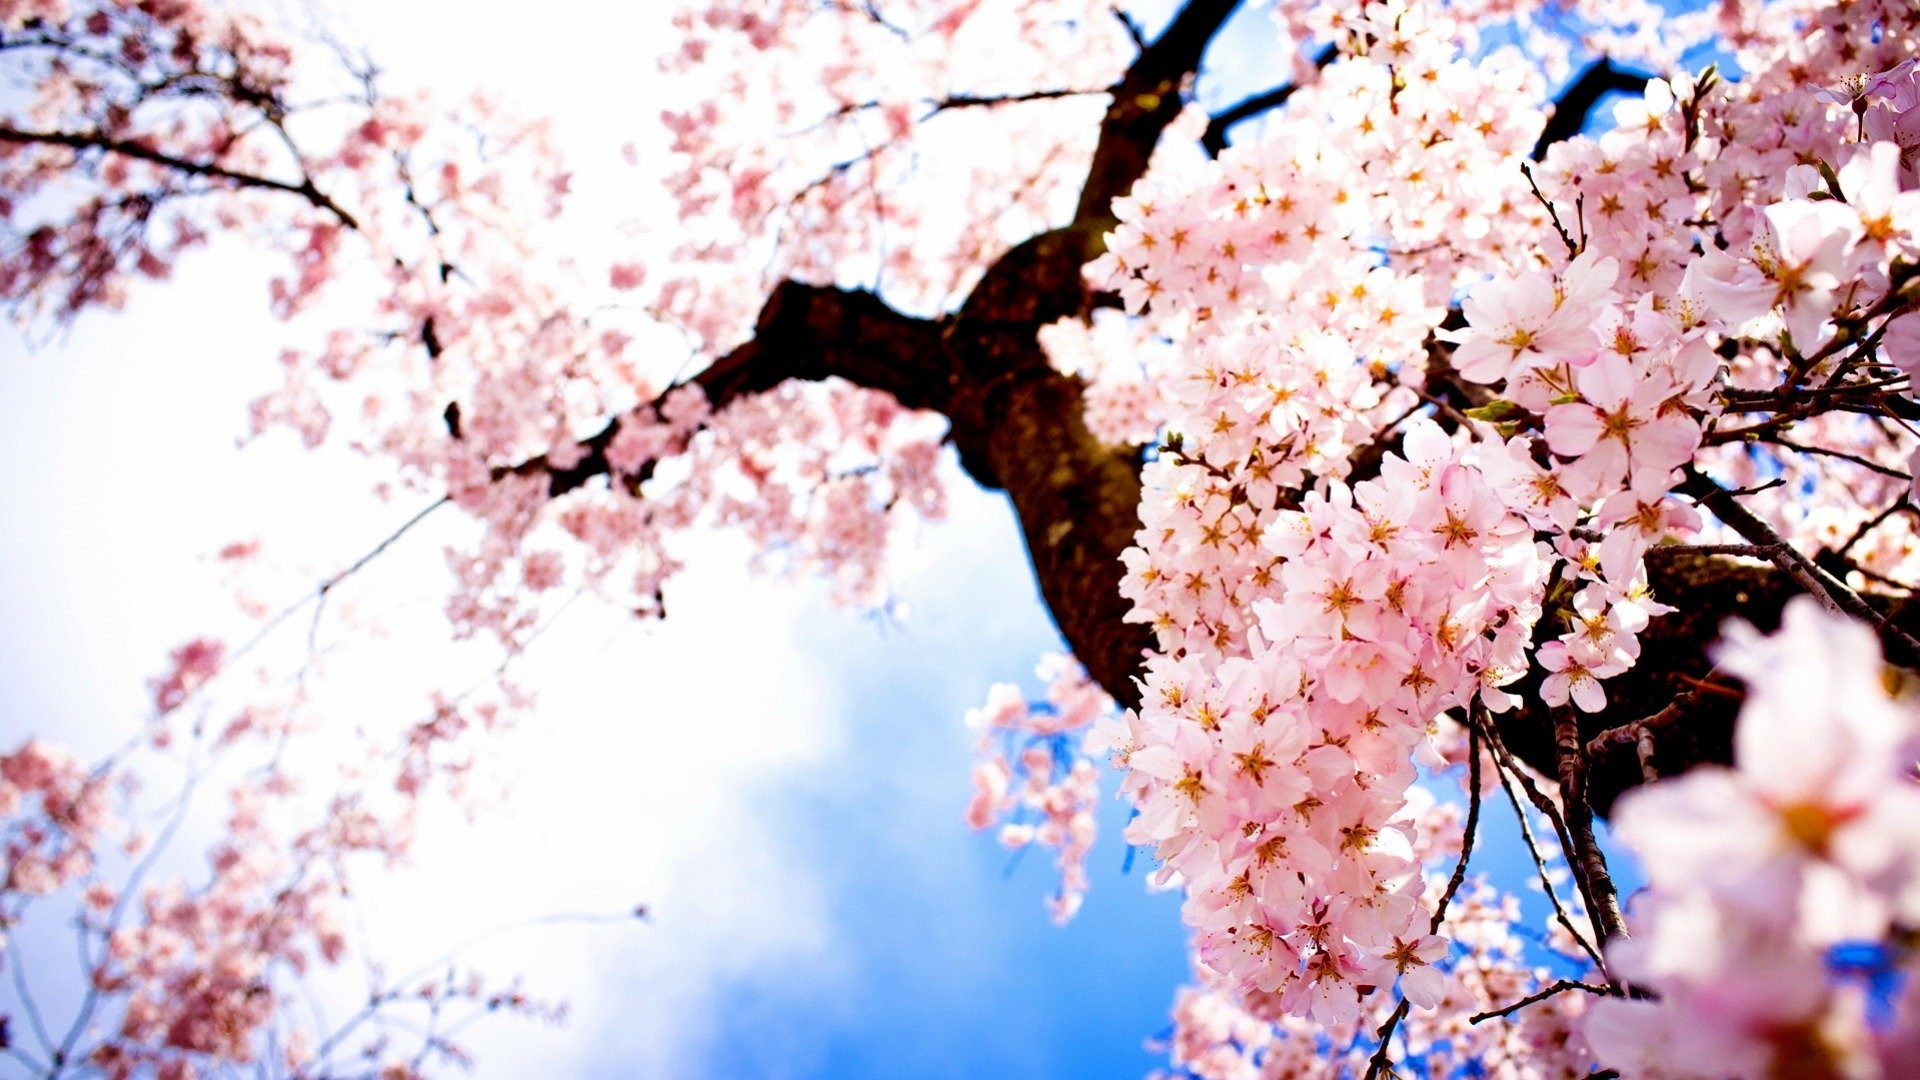 HD Wallpapers Landscape Images Sakura Fresh Airtree 1920x1080